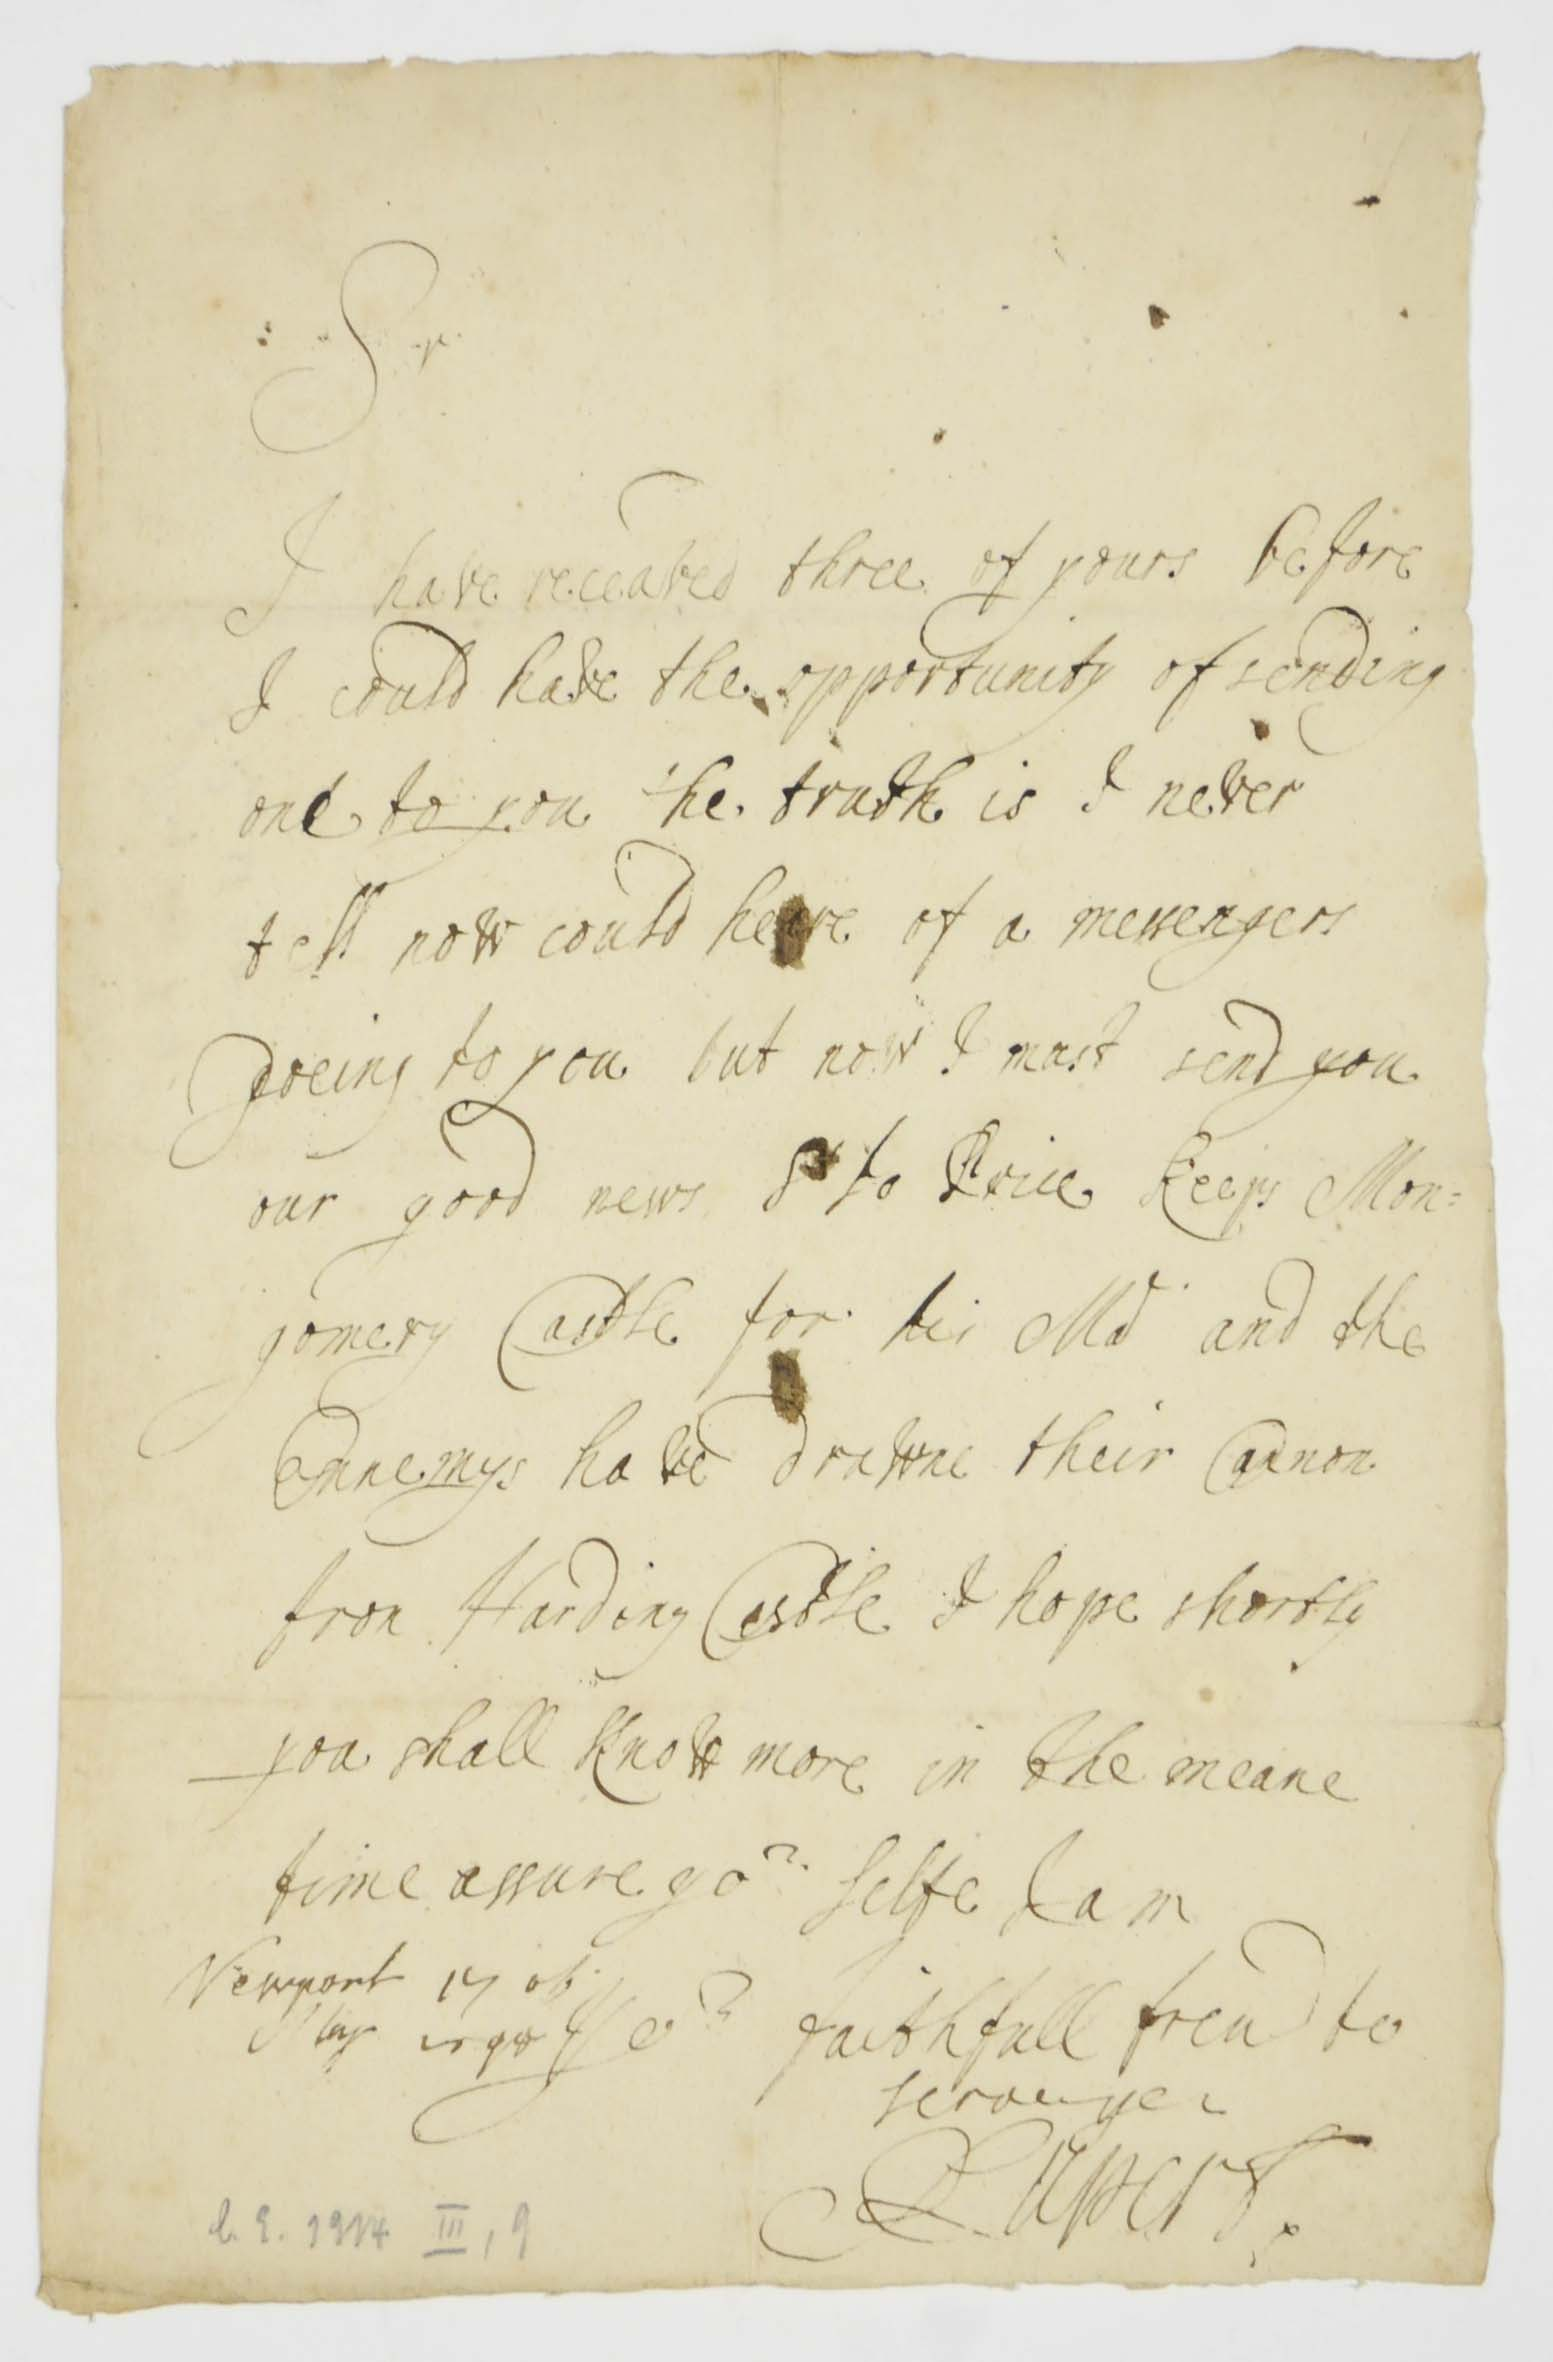 RUPERT, Prince (1619-1682), Count Palatine of the Rhine. Autograph letter signed ('Rupert') to an unidentified correspondent, Newport [Shropshire], 17 May 1645, having been prevented from writing sooner for want of a messenger but now reporting Sir John Price's success at Montgomery Castle and that 'the Ennemys have drawne their Cannon from Harding [i.e. Hawarden] Castle', one page, folio, docket; [with] an autograph letter signed by Queen HENRIETTA MARIA to [Louis XIII of France], [London, after 1625], in French, sending an assurance of her constant affection by 'Monsieur de Saint George' [Sir Henry St George] and desiring to remain in her brother's good graces, one page, 4to. (2)